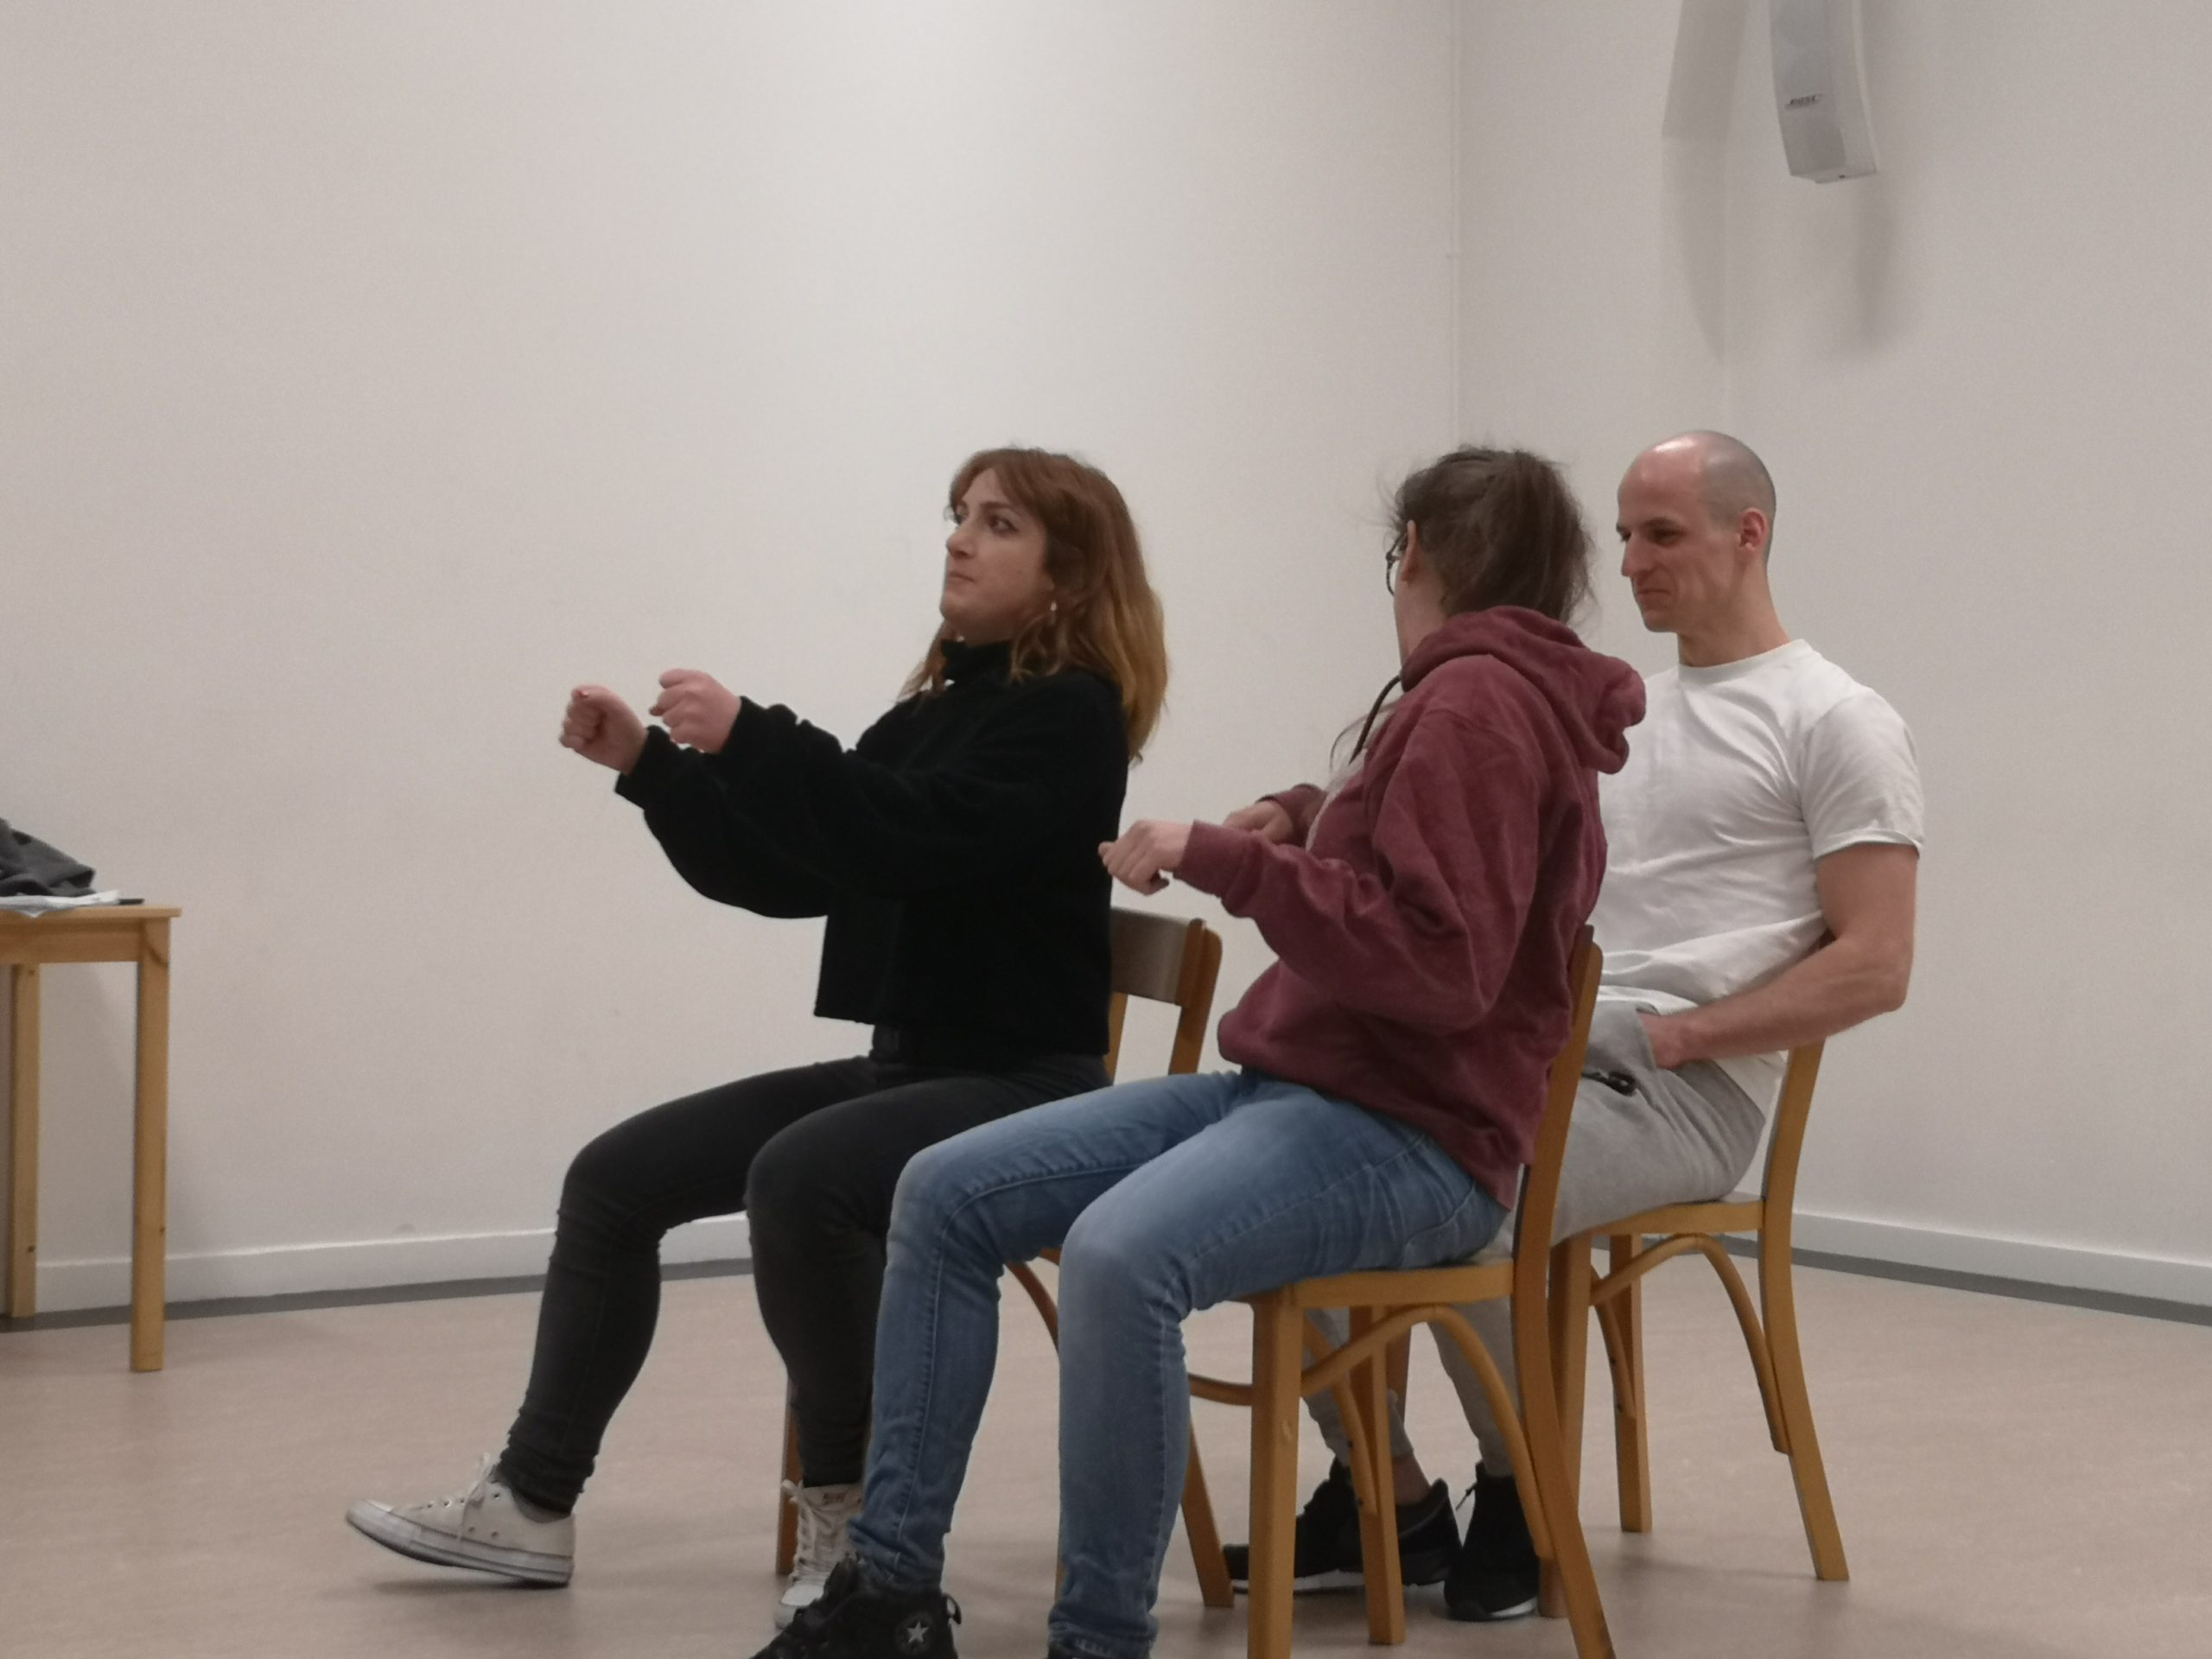 Acting class Act Attack. Three people are sitting on chairs, two at the front one at the back. The front right person, a girl, pretends to drive